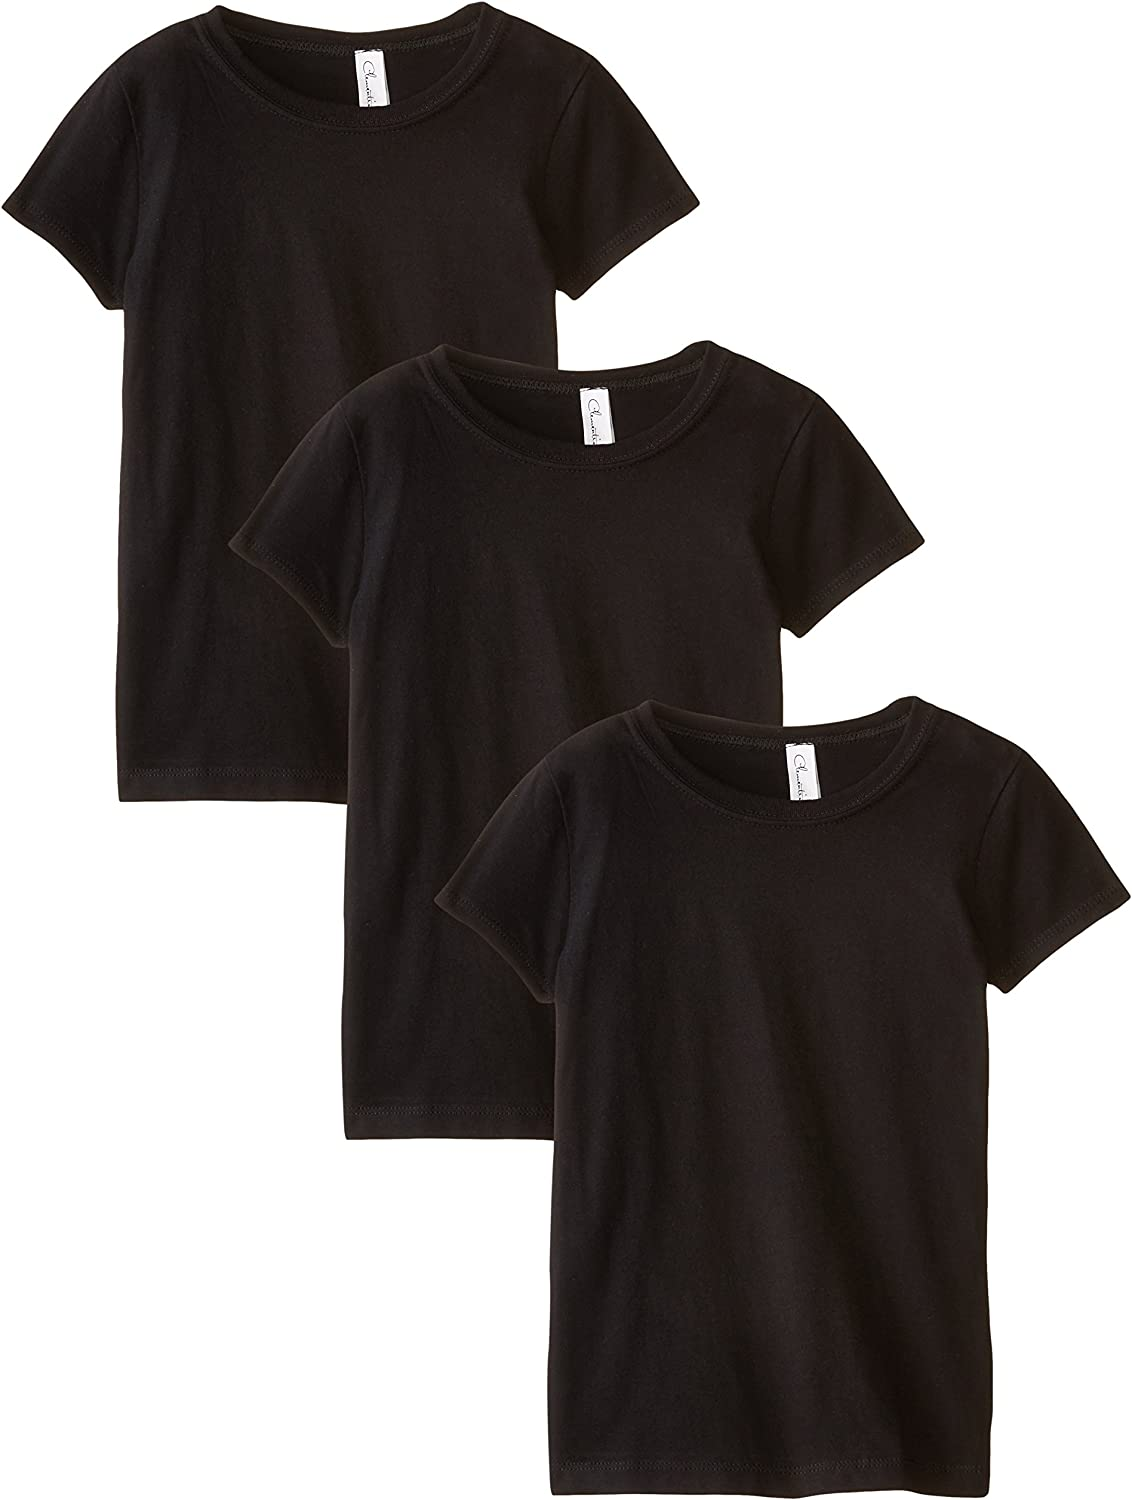 3710 Clementine Apparel Girls 3 Pack Short Sleeve T Shirts Easy Tag Comfort Crew Neck Soft 100/% Cotton Undershirt Tees